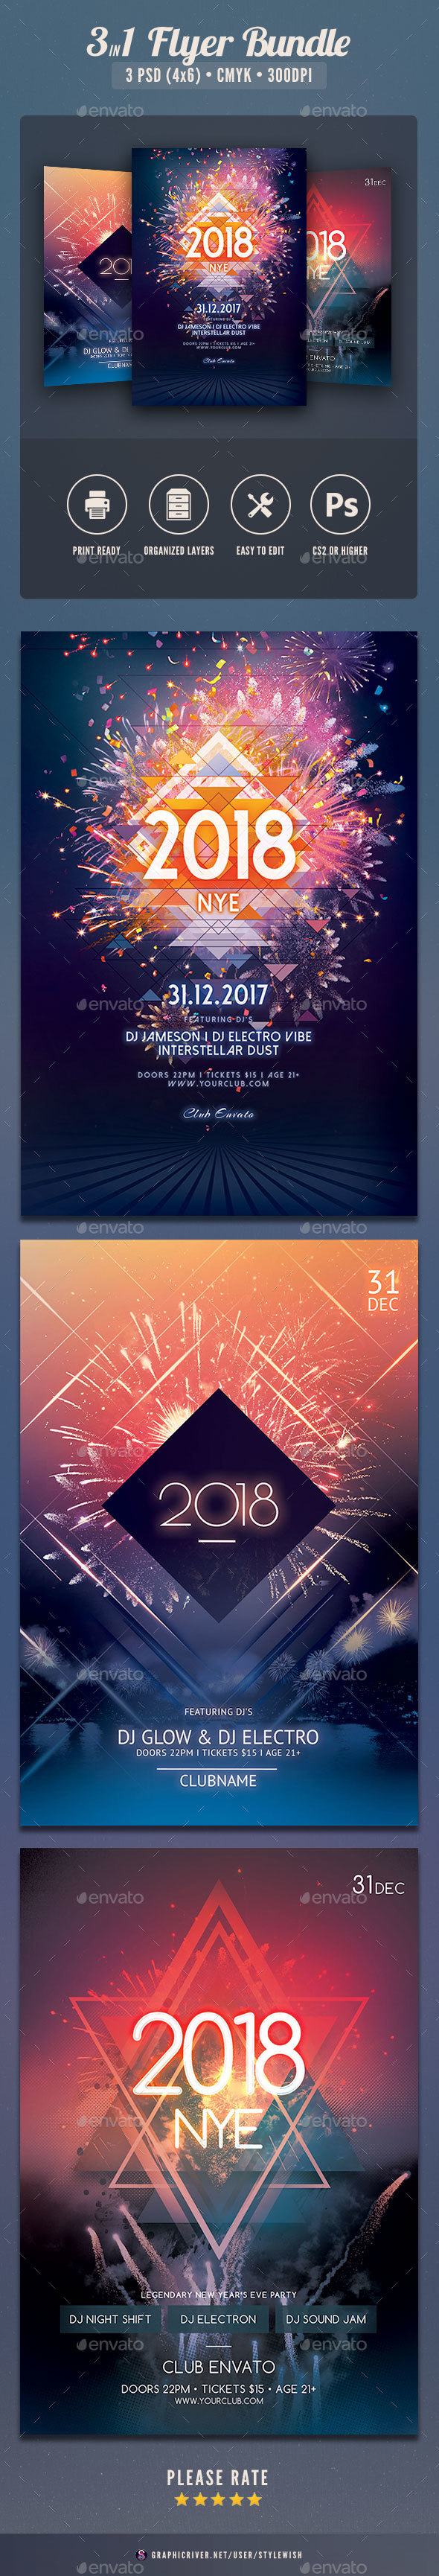 New Year Flyer Bundle Vol.11 - Clubs & Parties Events